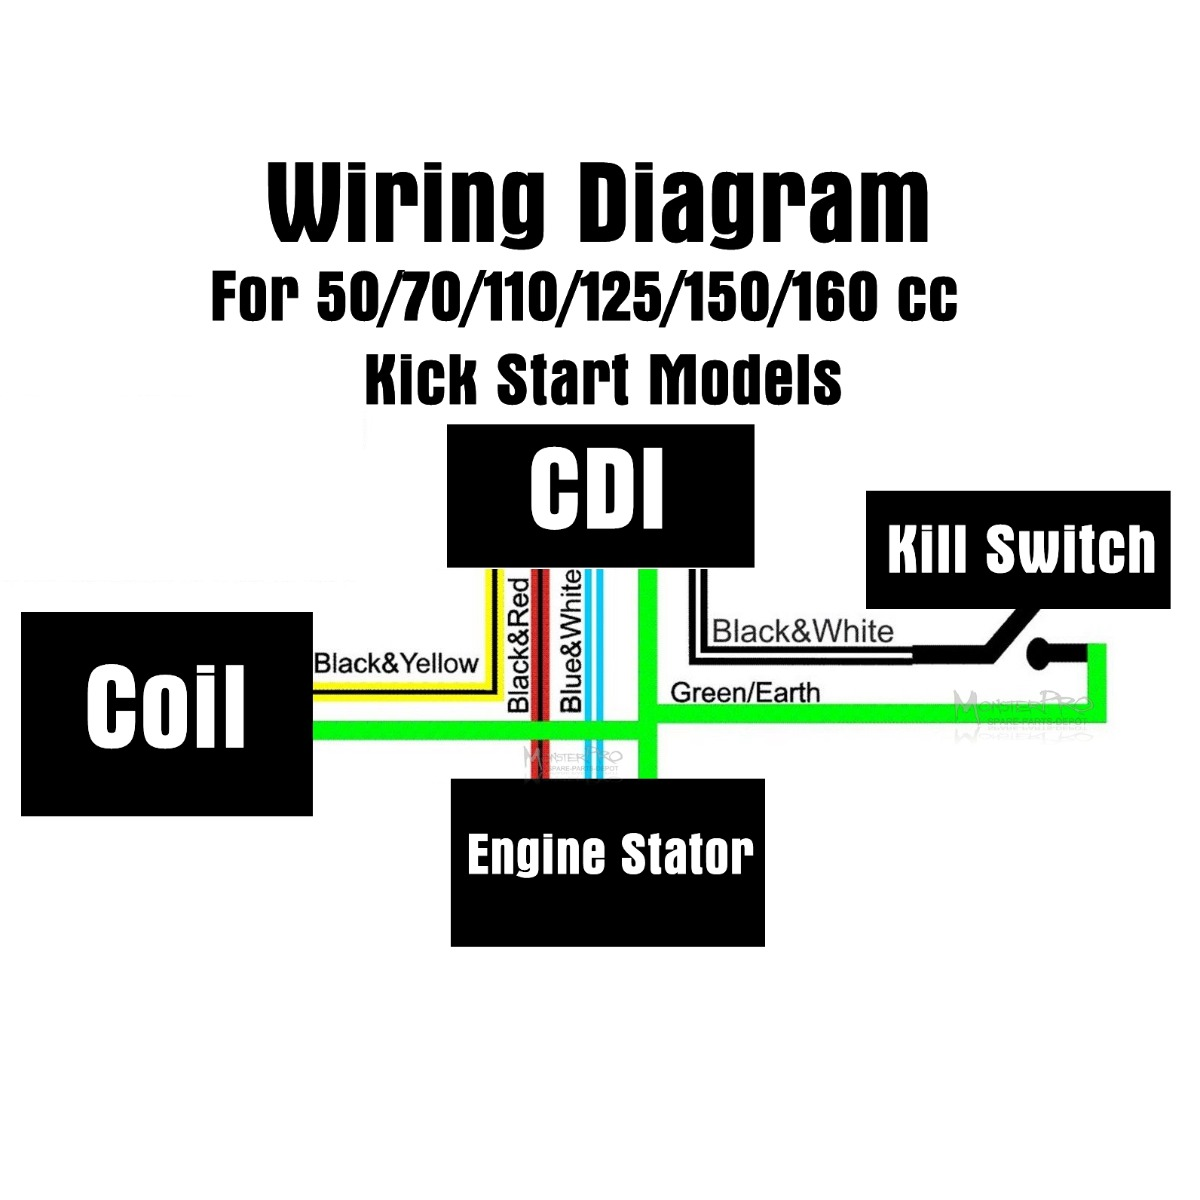 110 cc engine electric start diagram